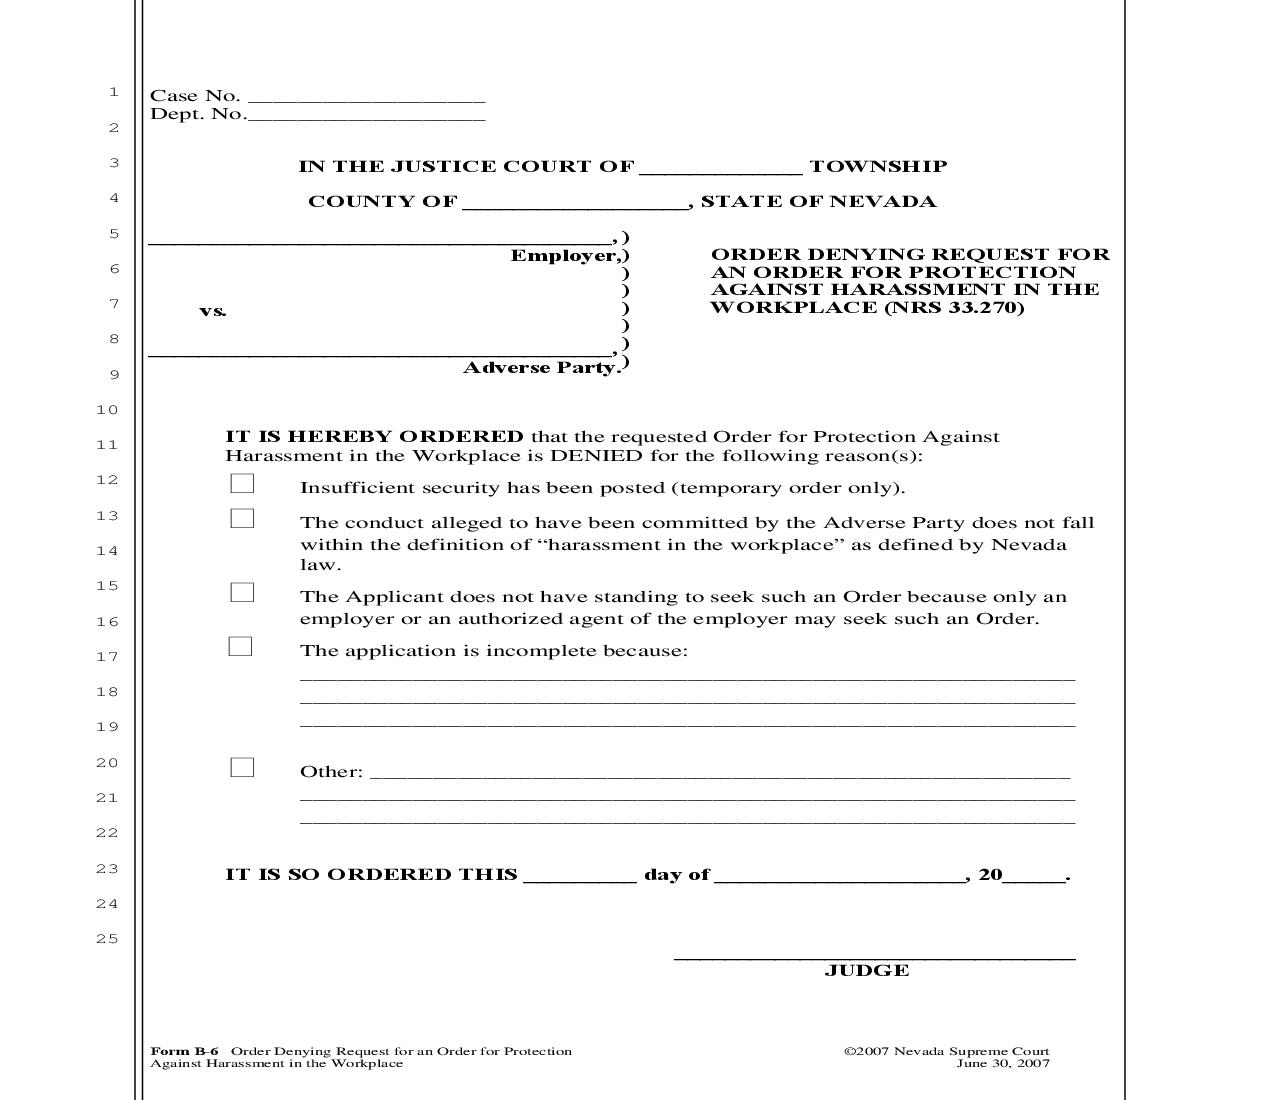 Order Denying Request For An Order For Protection Against Harassment In The Workplace {B-6} | Pdf Fpdf Doc Docx | Nevada